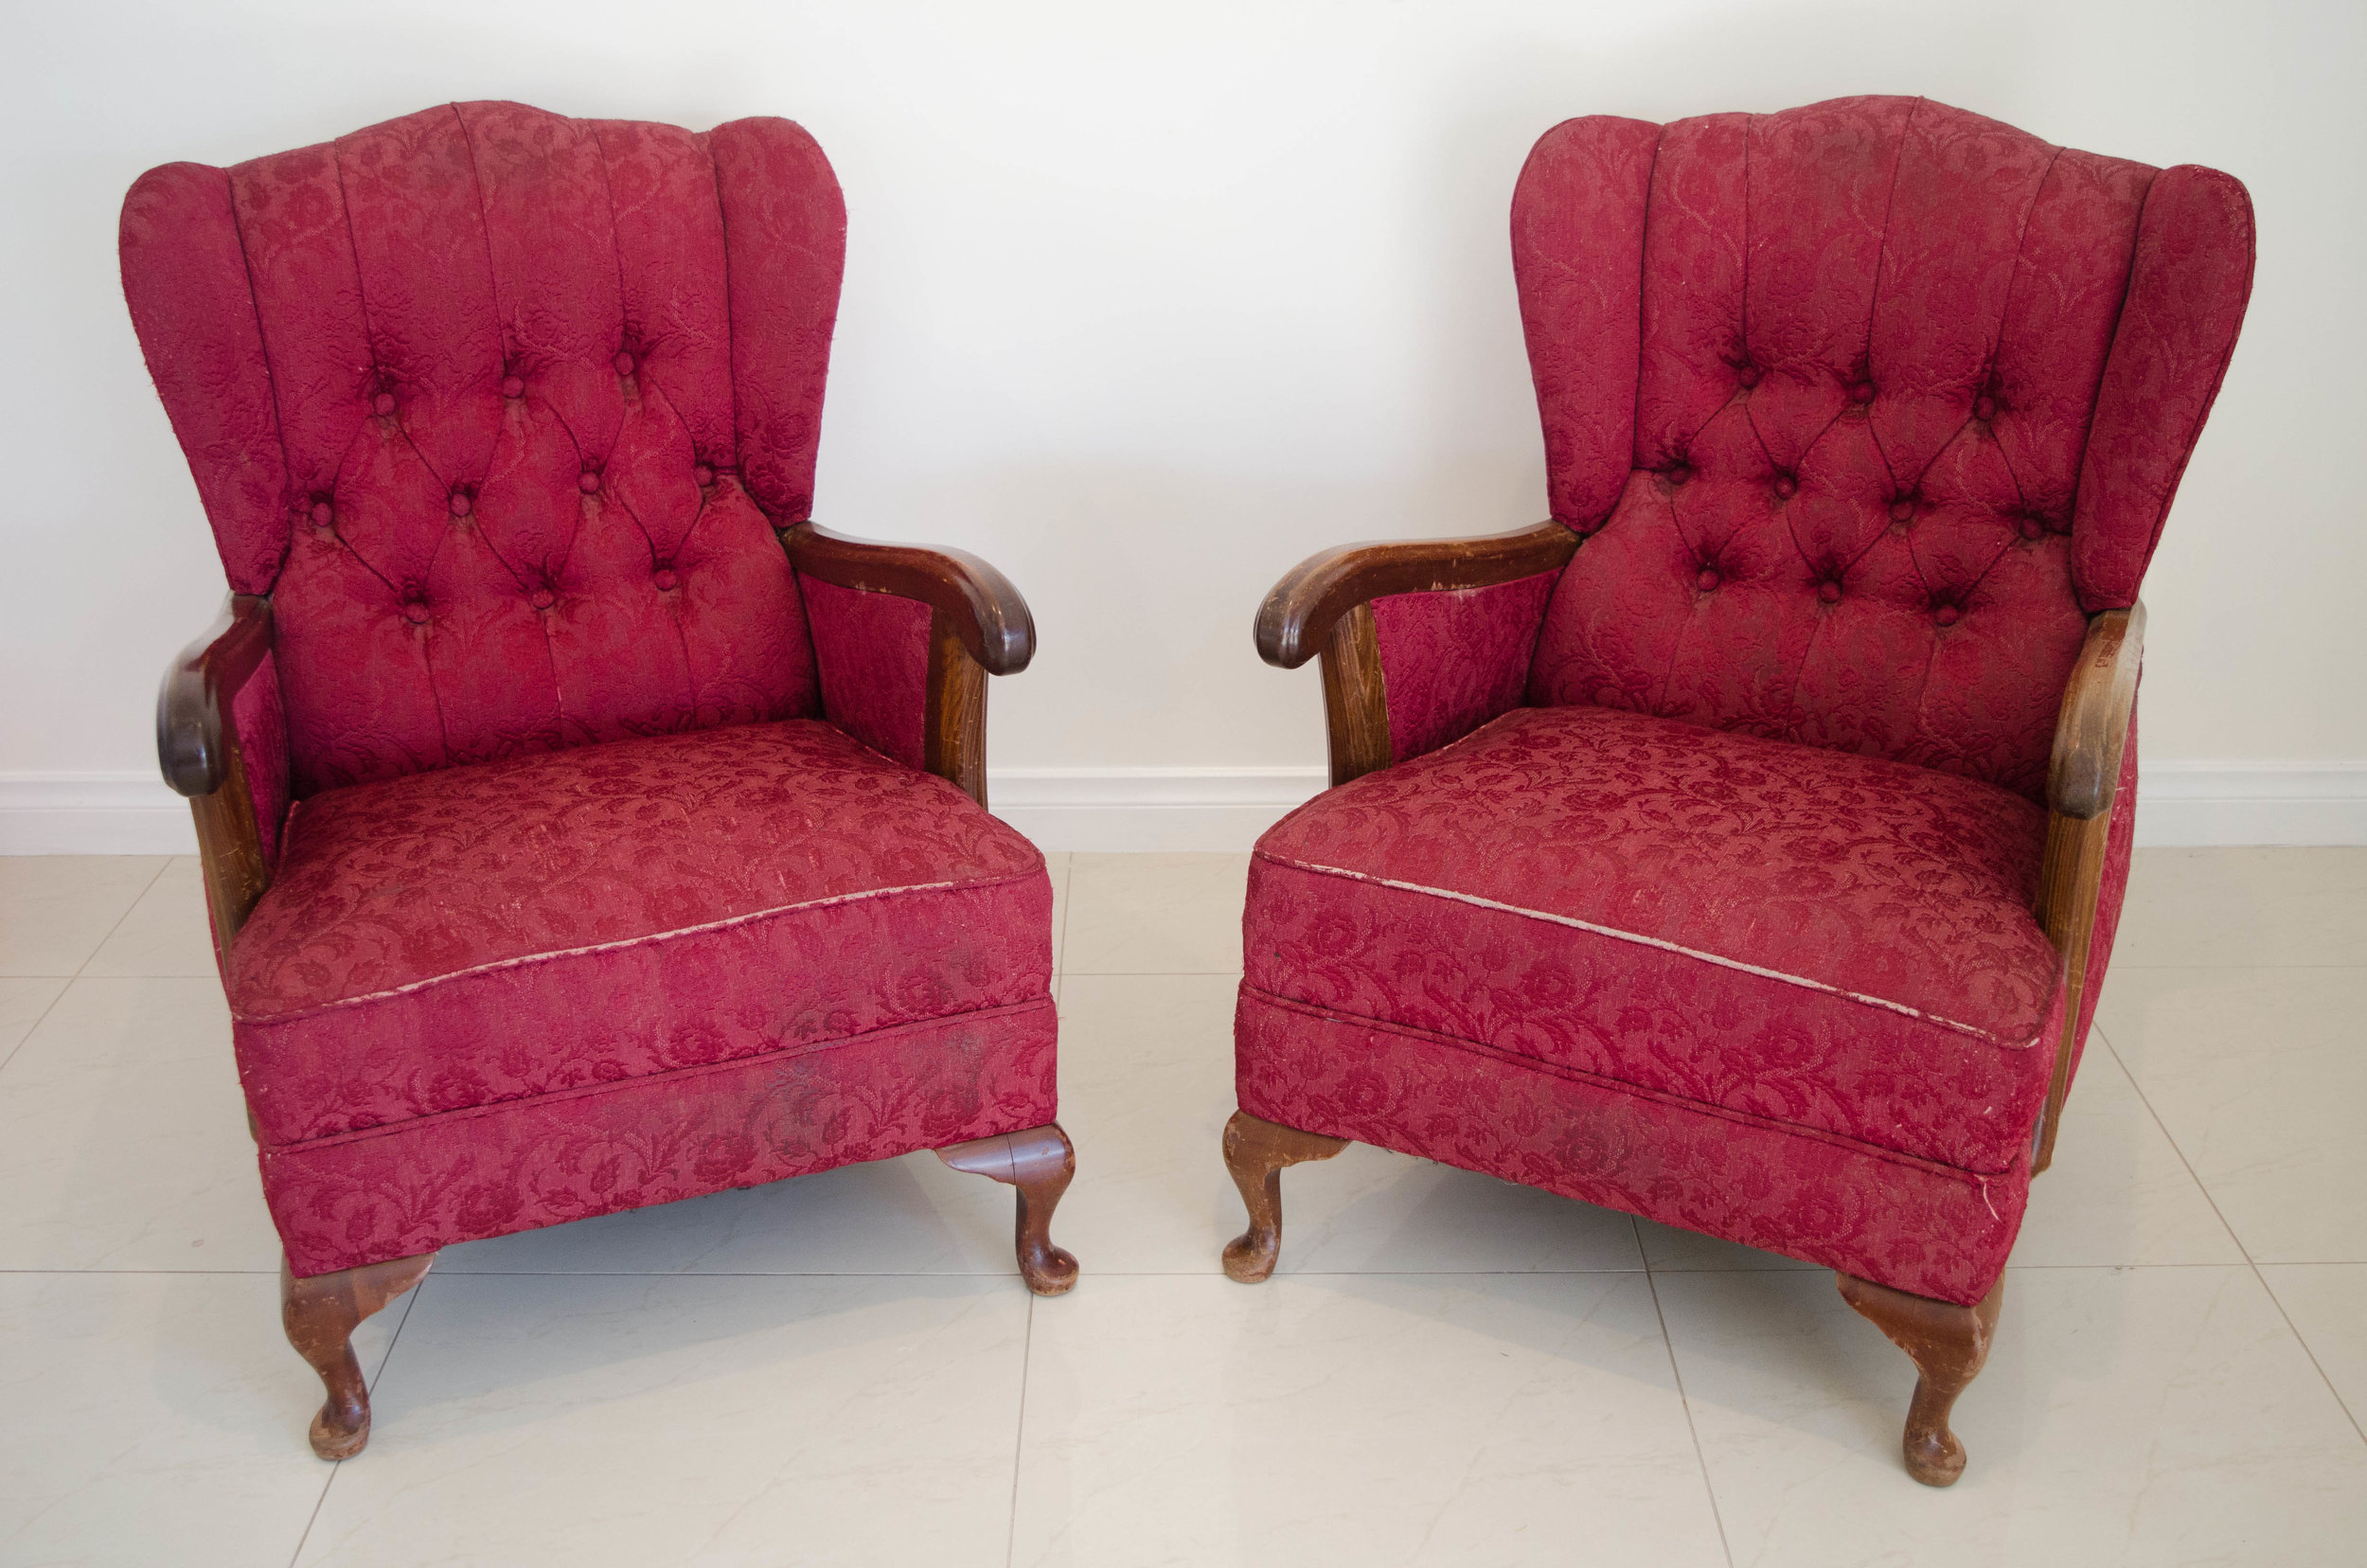 Juliet Seat Red   $50.00 + GST (3-DAY HIRE) EACH                                       QUANTITY: 2